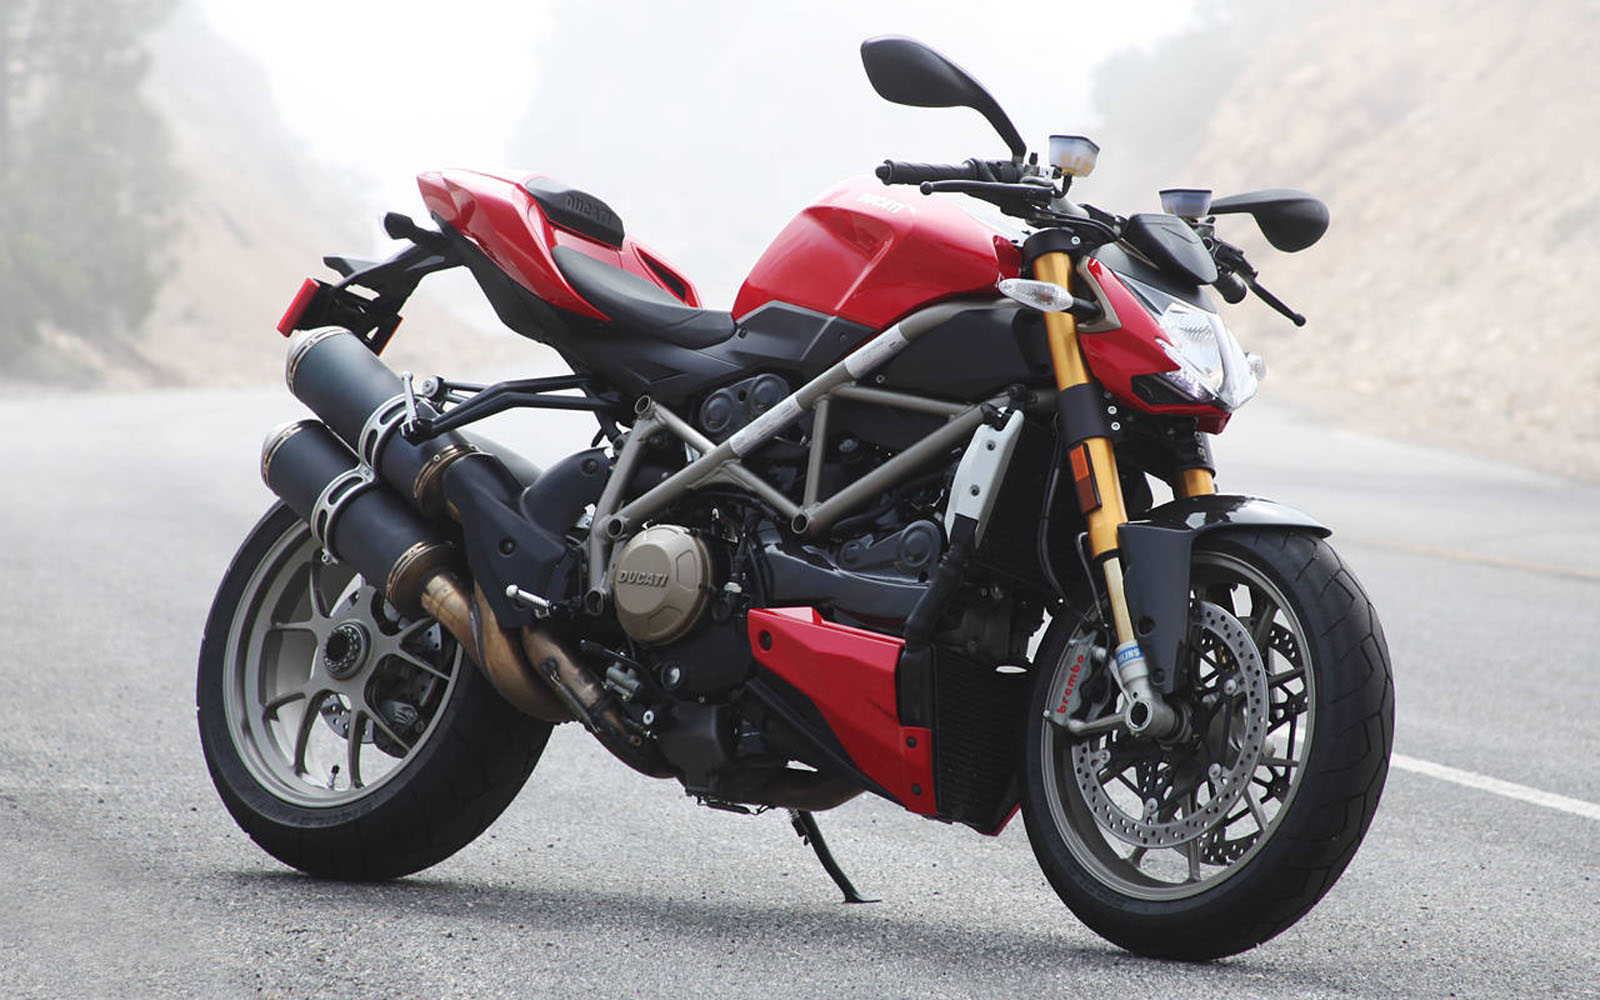 Ducati Streetfighter S Wallpapers   Desktop Wallpapers Online